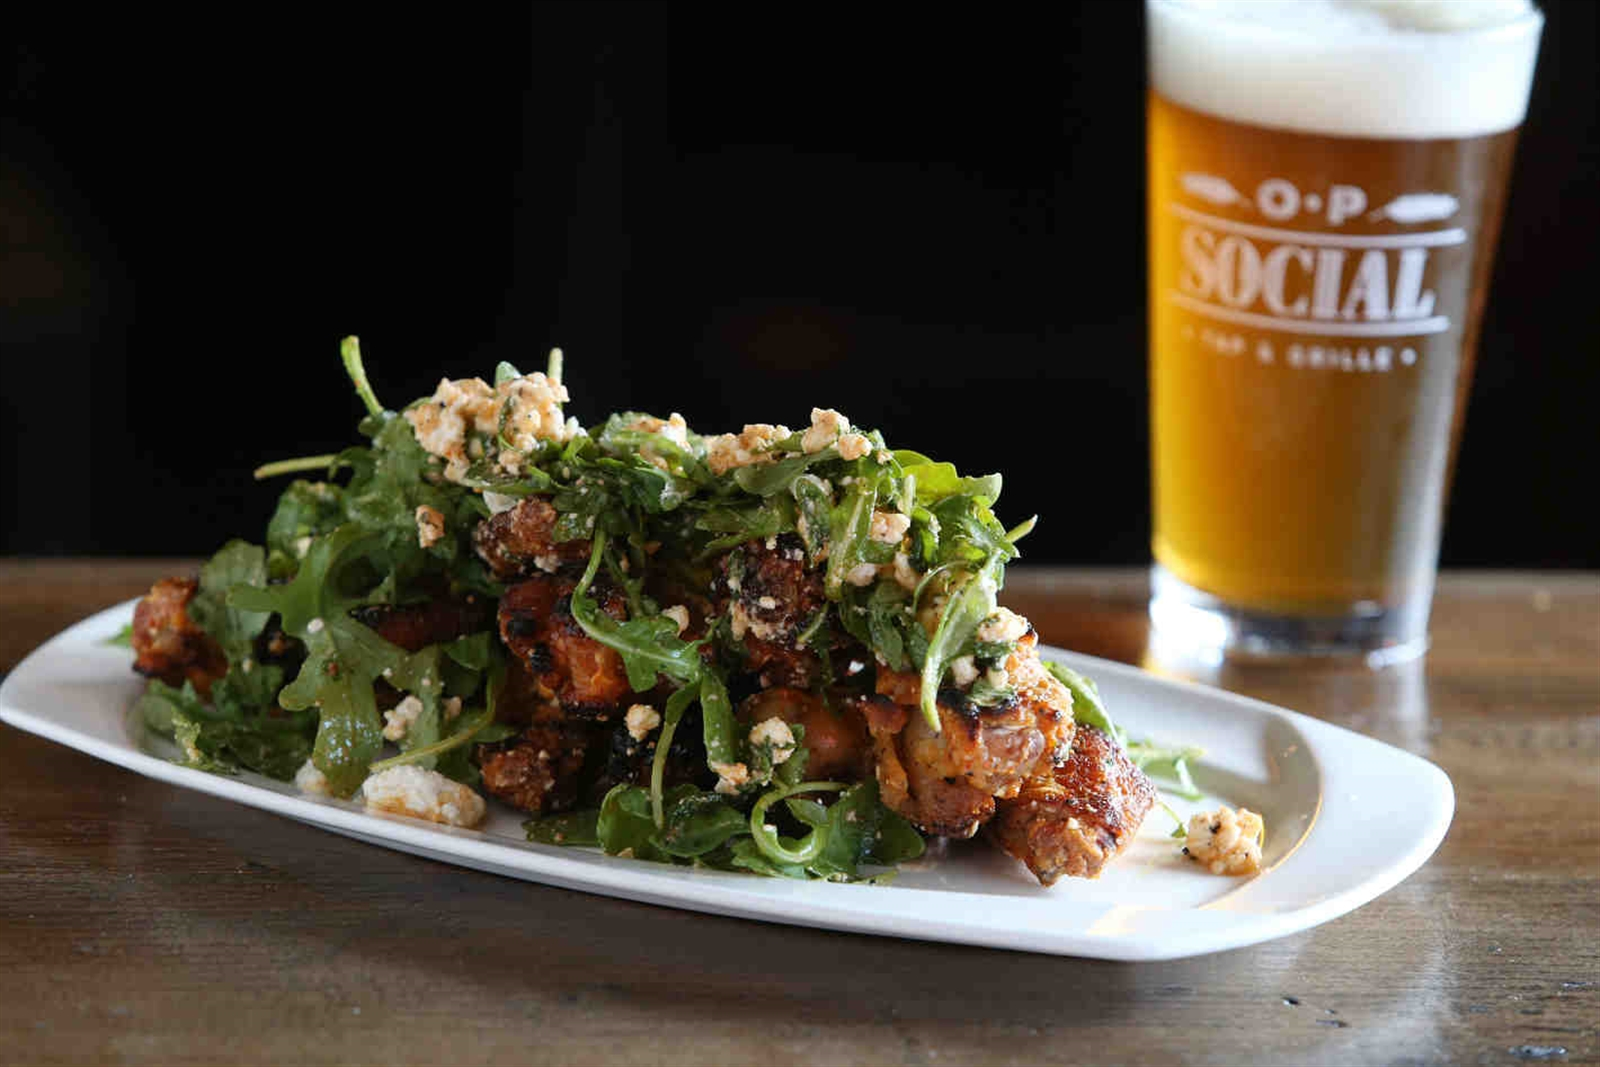 The social wings are herb marinated and artisan oven fired, tossed in spiced feta and baby arugula.